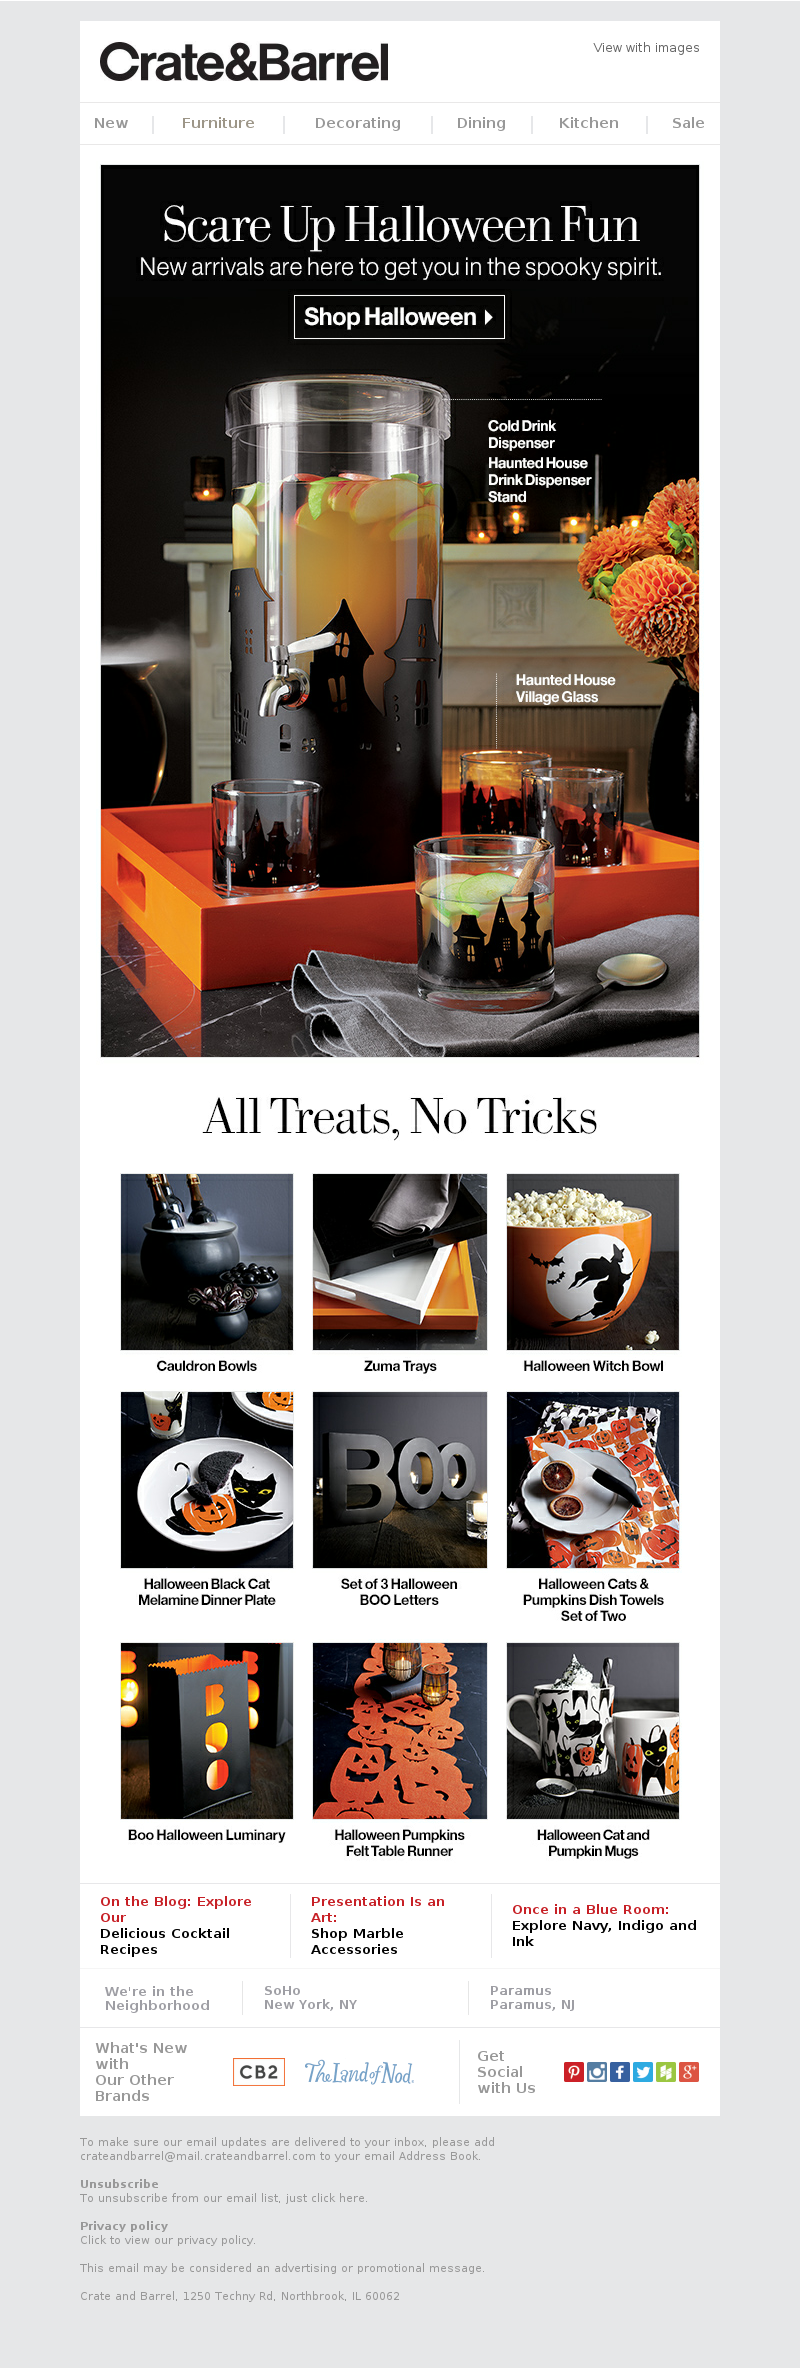 Never fear. Halloween arrivals are here. Crate&Barrel View with images New